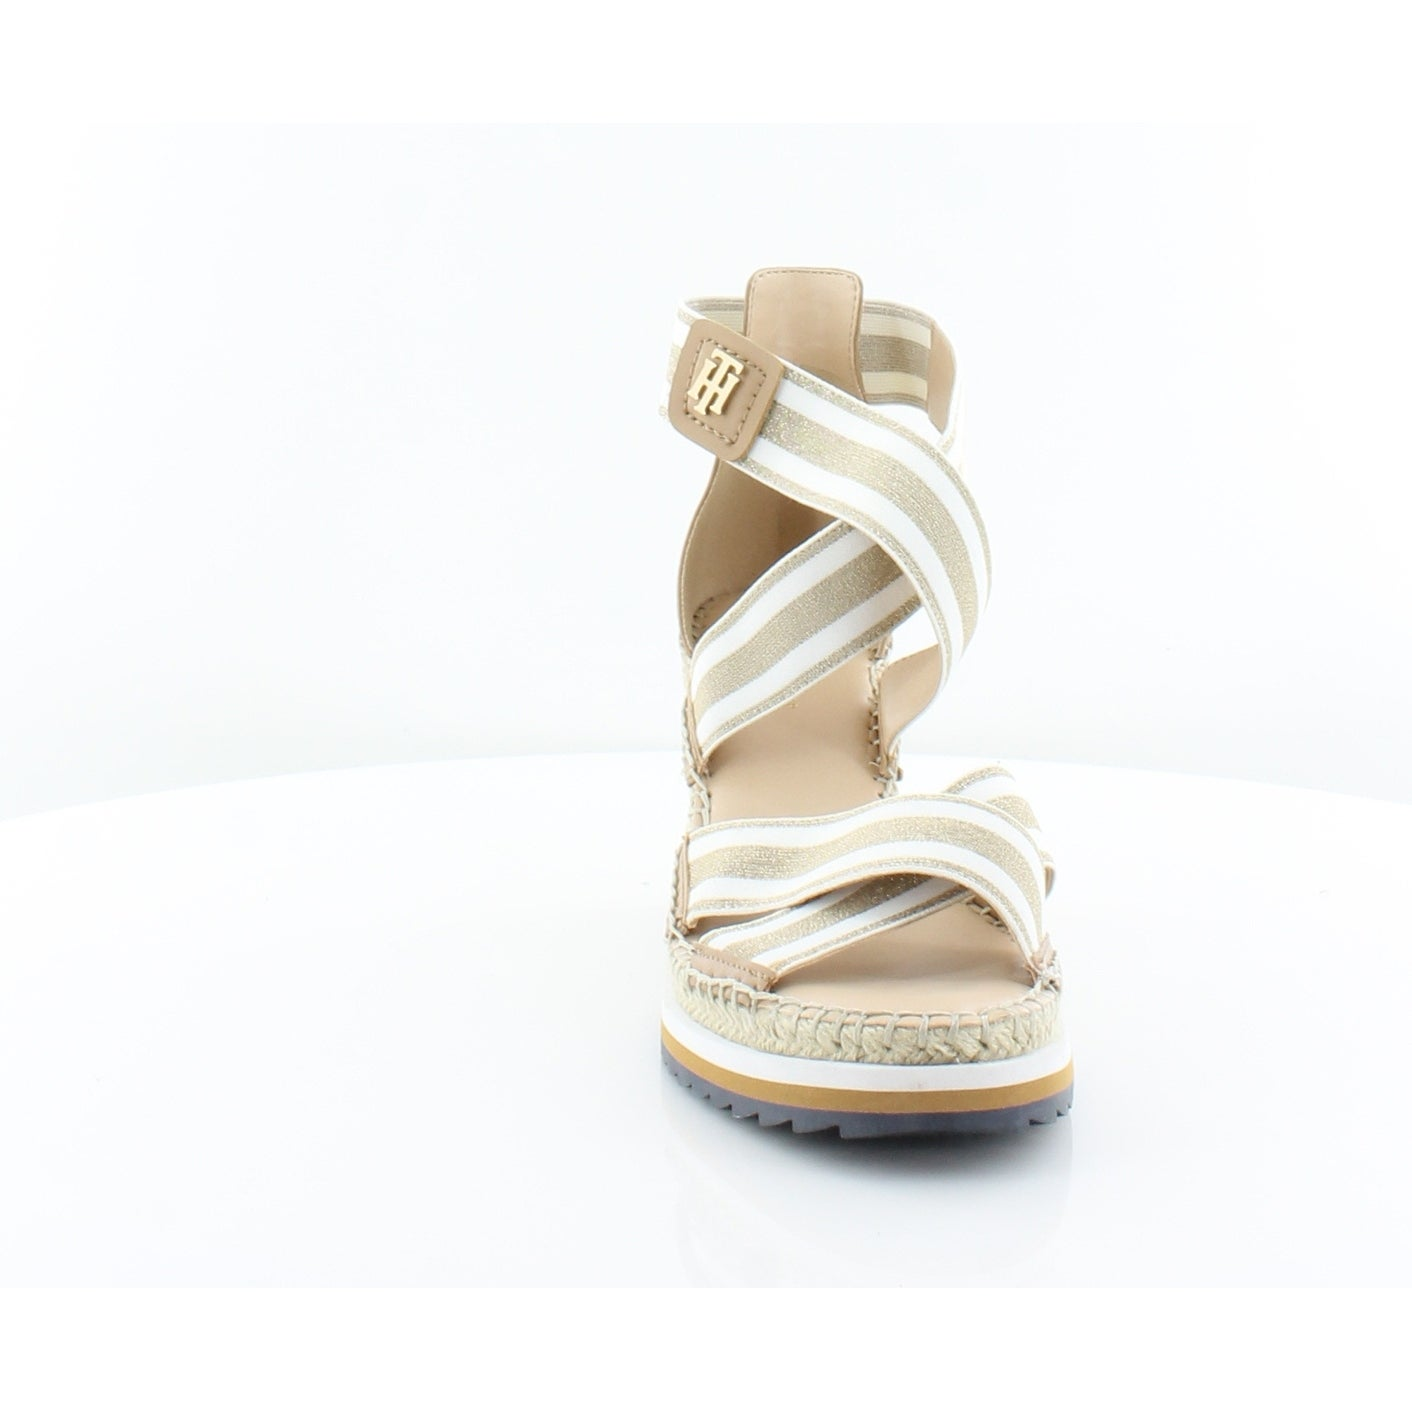 0d6604d13b05 Shop Tommy Hilfiger Yesia Women s Sandals Gold Multi - Free Shipping On  Orders Over  45 - Overstock - 26949133